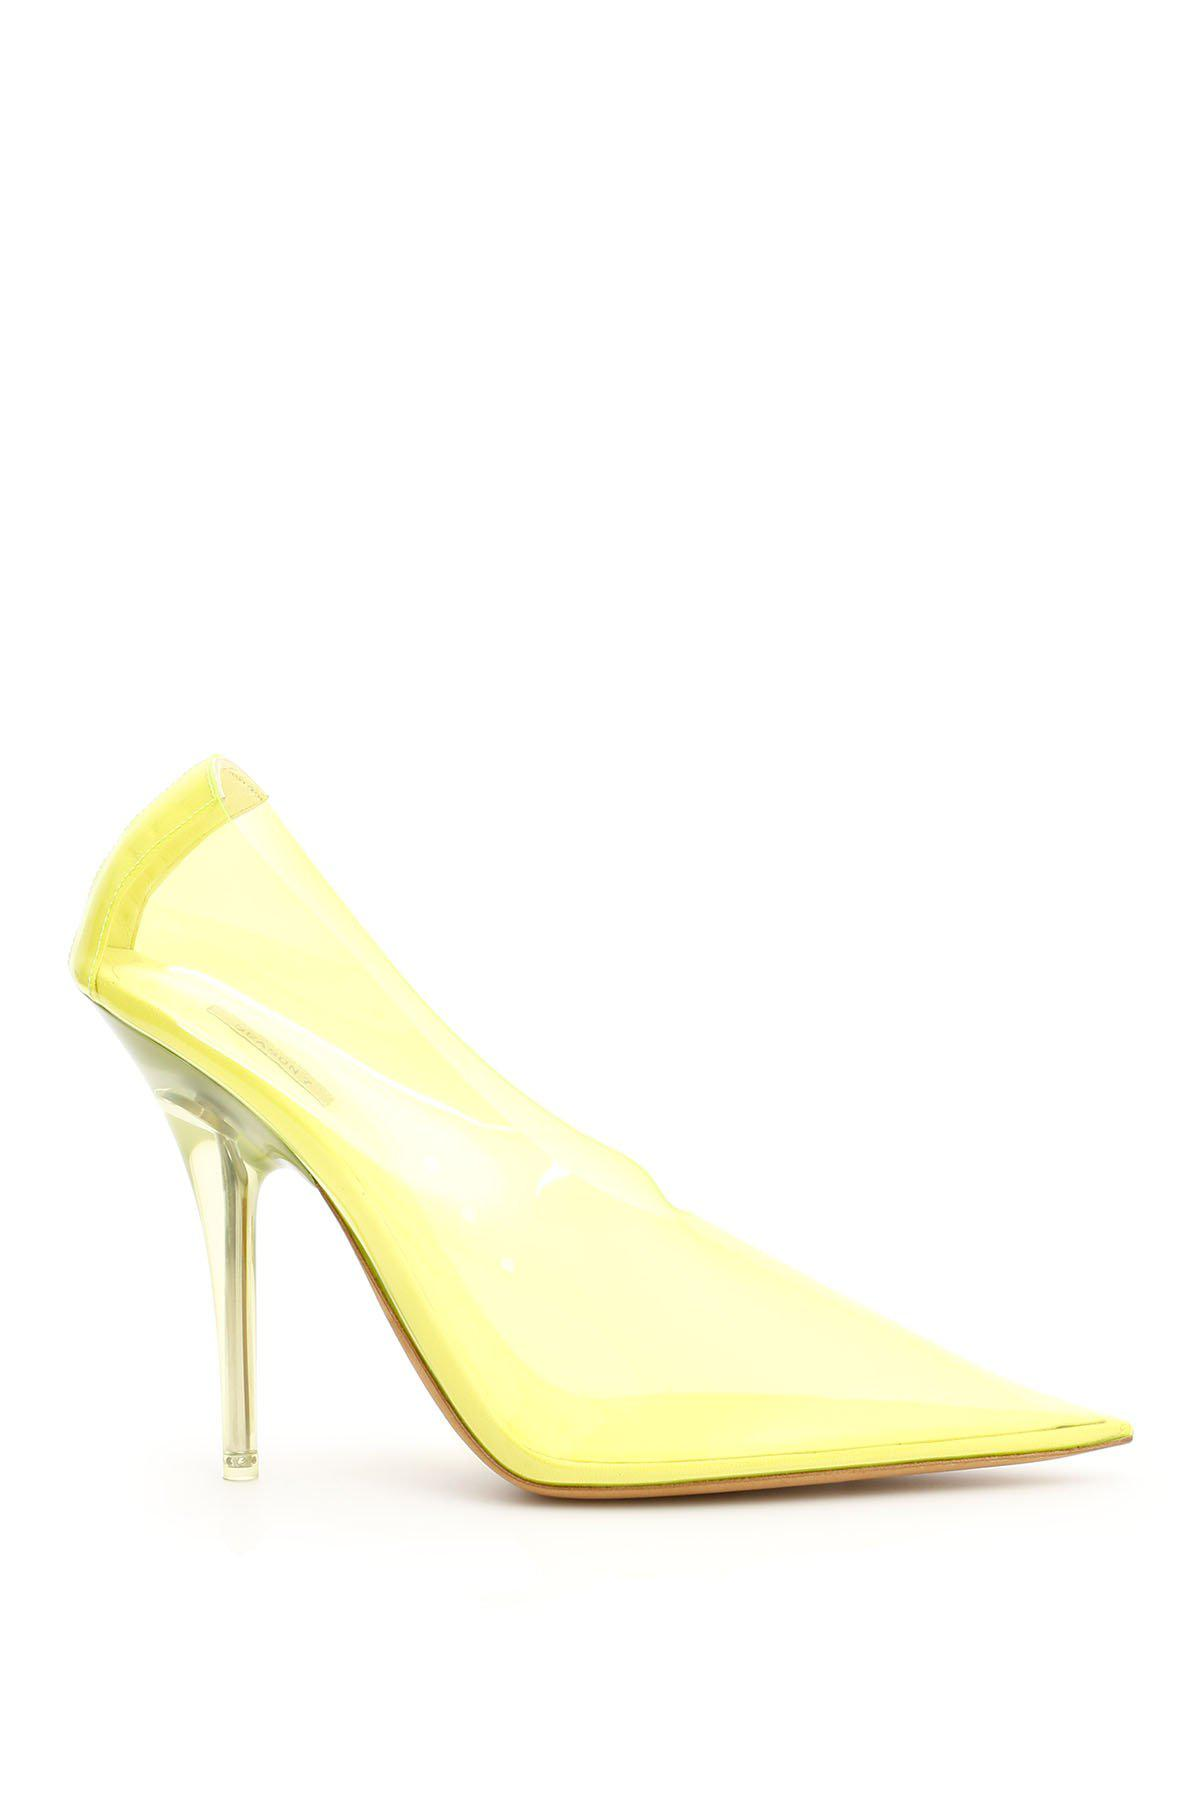 50103bccc5cf Lyst - Yeezy Translucent Pointy Pumps in Yellow - Save 51%